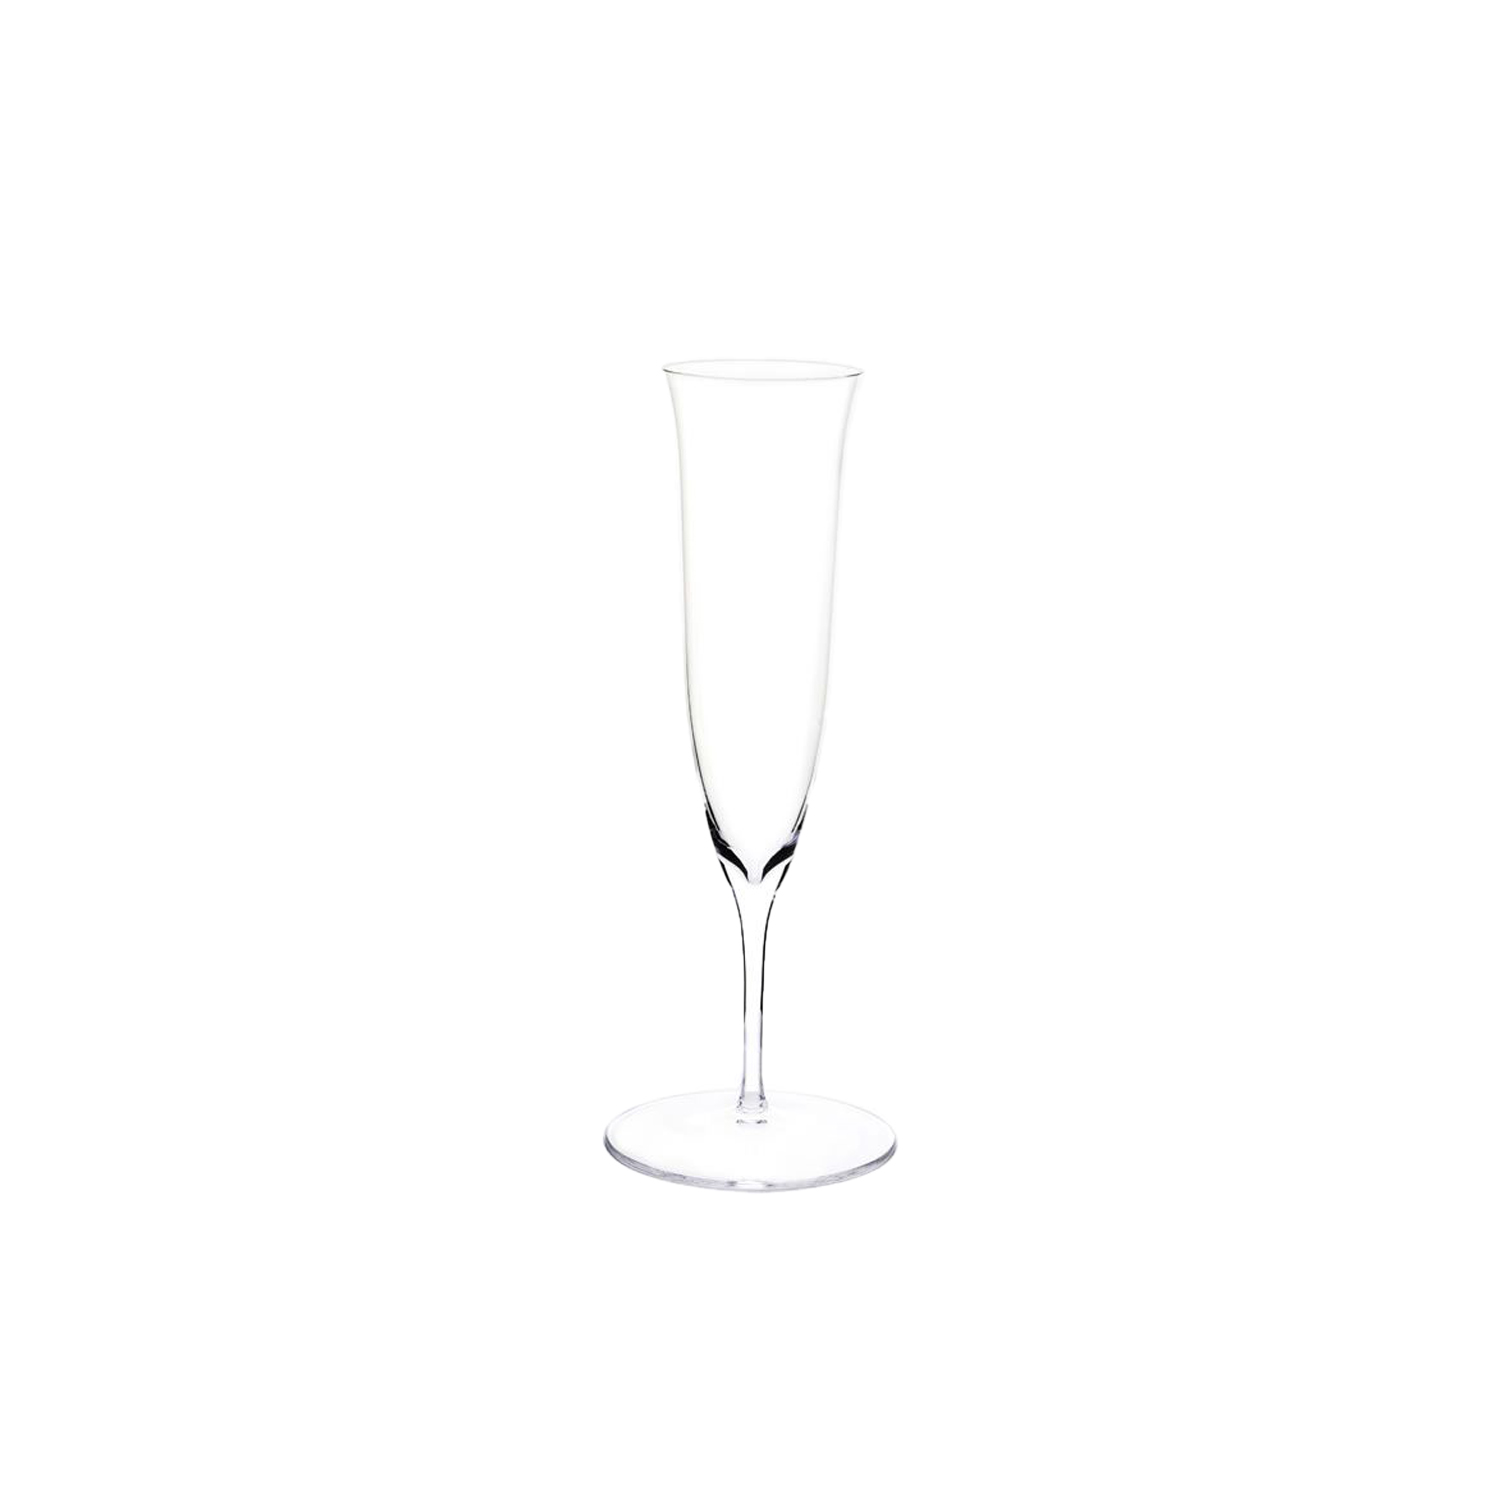 Drinking Set No.238 Champagne Flute - Set of 6 - The perfectly flowing contours of these original Hoffmann shapes make this muslin glass service a classic. Josef Hoffmann designed the elegantly balanced glasses for Lobmeyr as early as 1917. The material, extremely delicate muslin glass, hand-blown in wooden shapes, gives the series its elegance. | Matter of Stuff